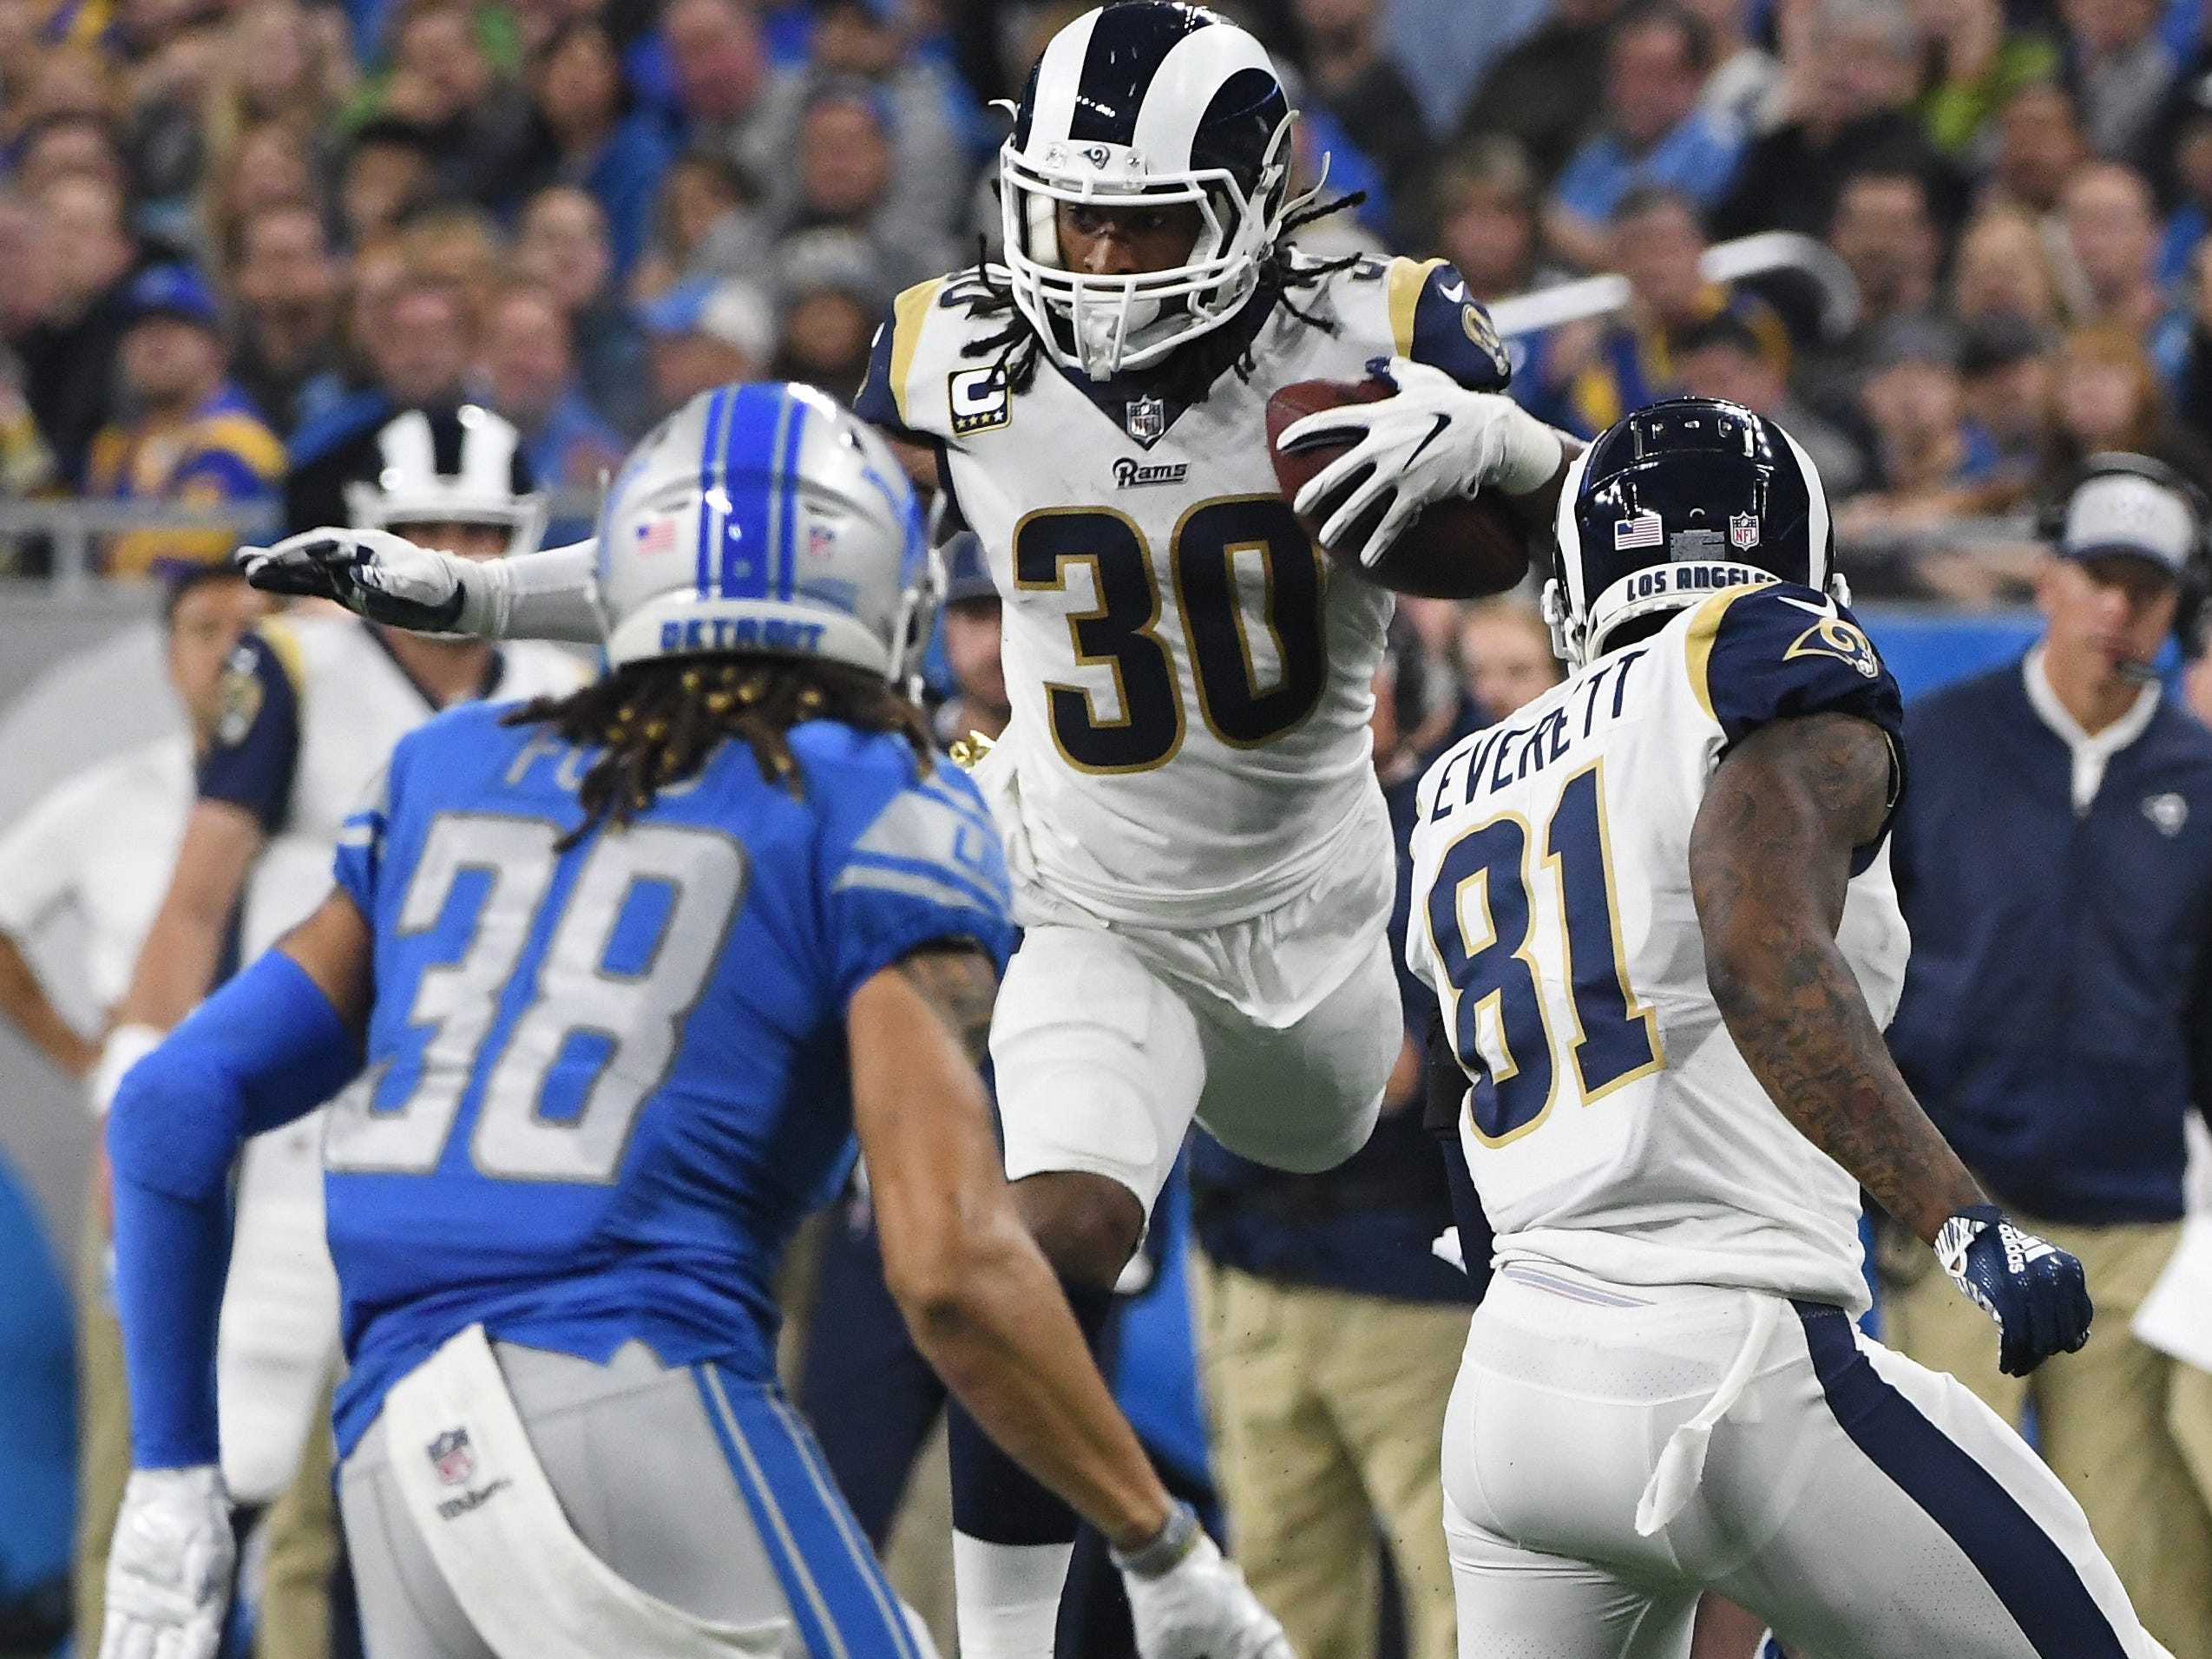 Rams running back Todd Gurley II works the ball up field in the second quarter, but a Rams penalty calls the play back.